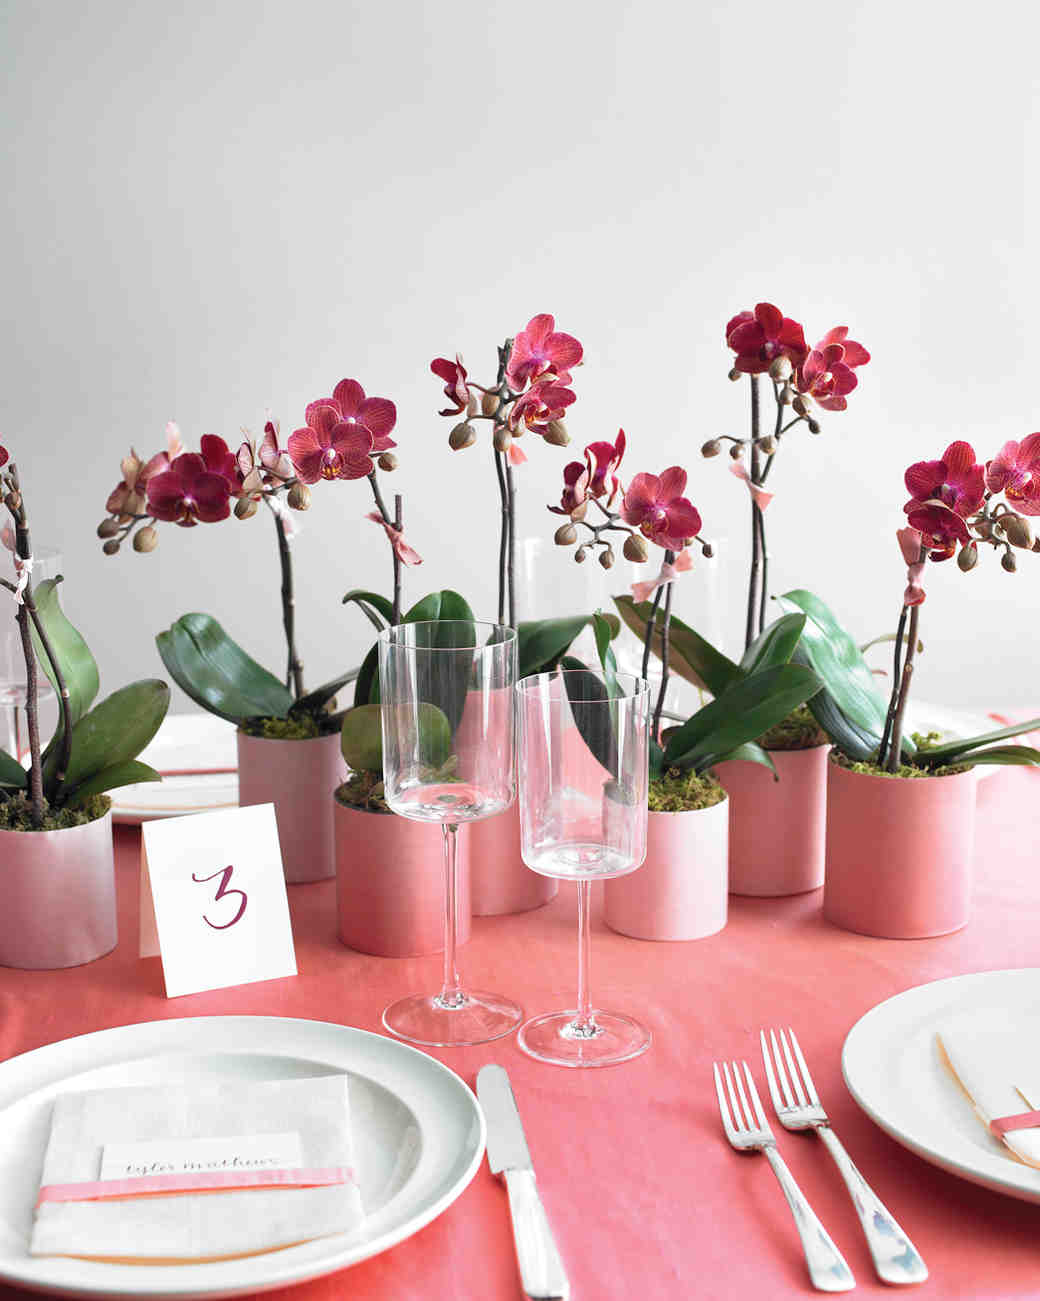 diy-floral-favors-orchid-pot-centerpieces-sp10-0615.jpg